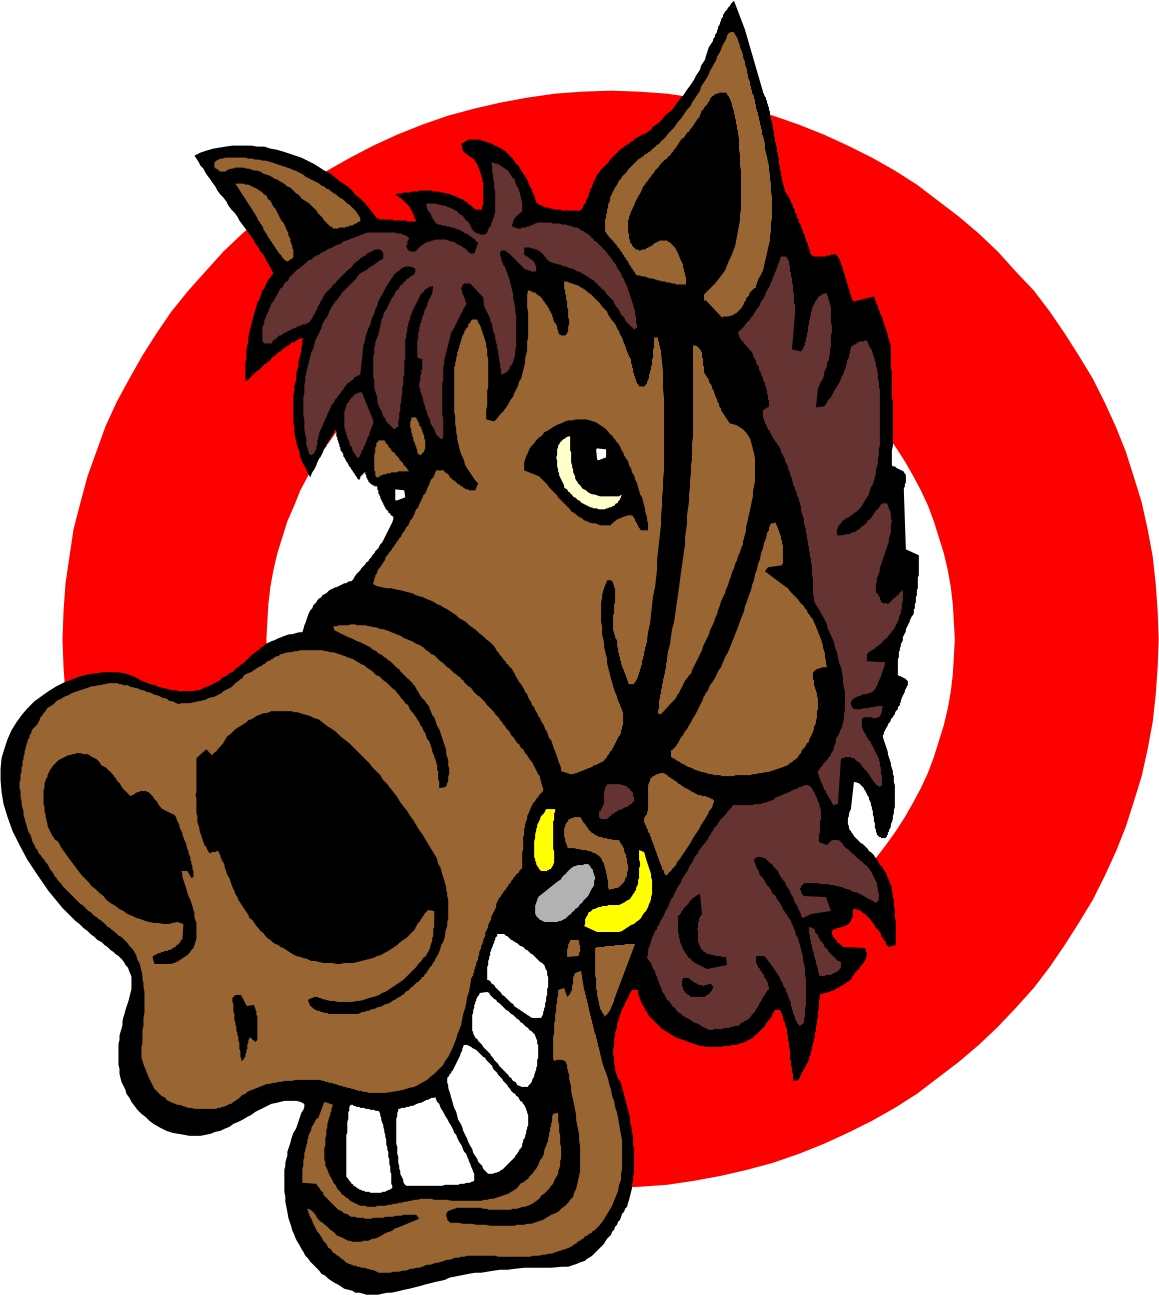 Free Horse Head Cartoon, Download Free Clip Art, Free Clip Art on.